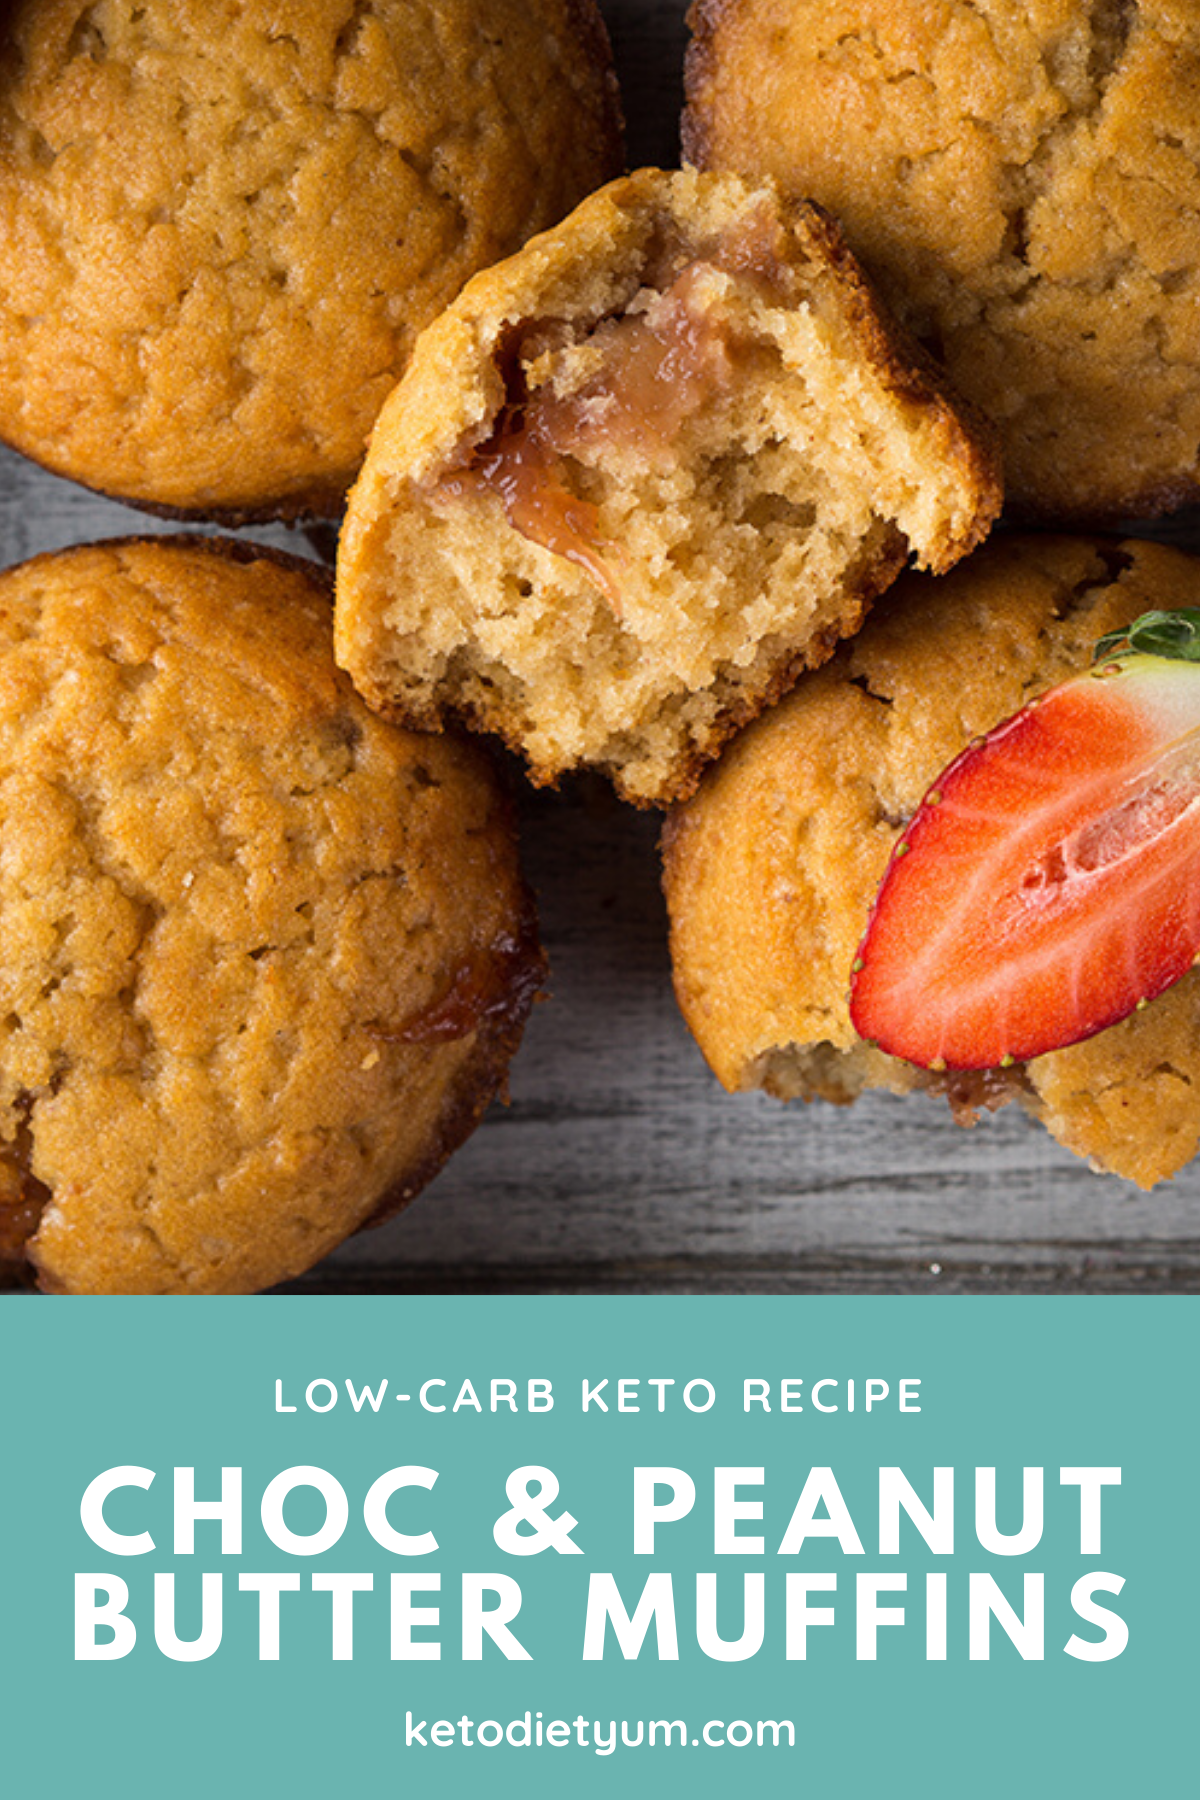 These low-carb chocolate and peanut and butter muffins are mouthwateringly good and super healthy. Full of creamy peanut butter chocolate flavor and chocolate chips, you won't even believe these muffins are keto! #ketodiet #ketorecipes #lowcarbrecipes